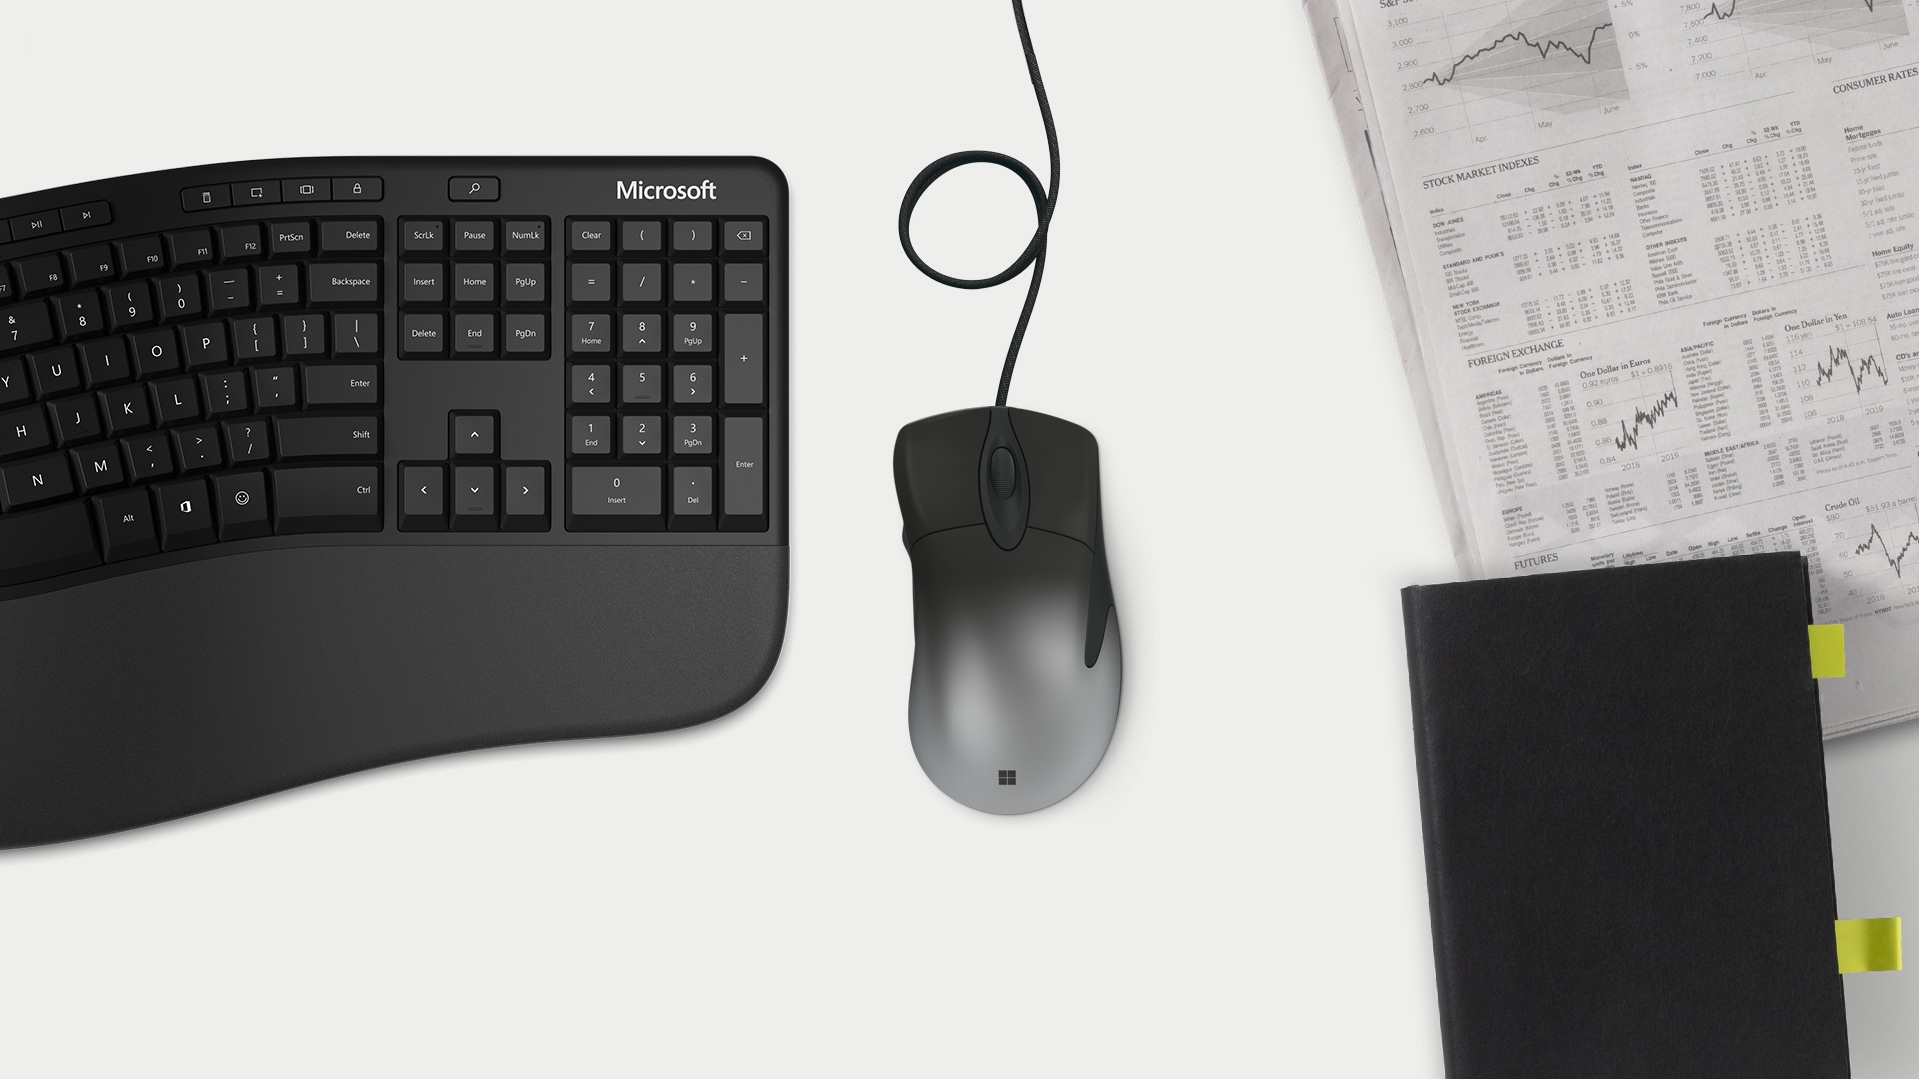 Intelli mouse and ergonomic keyboard on a table with a newspaper and a journal.